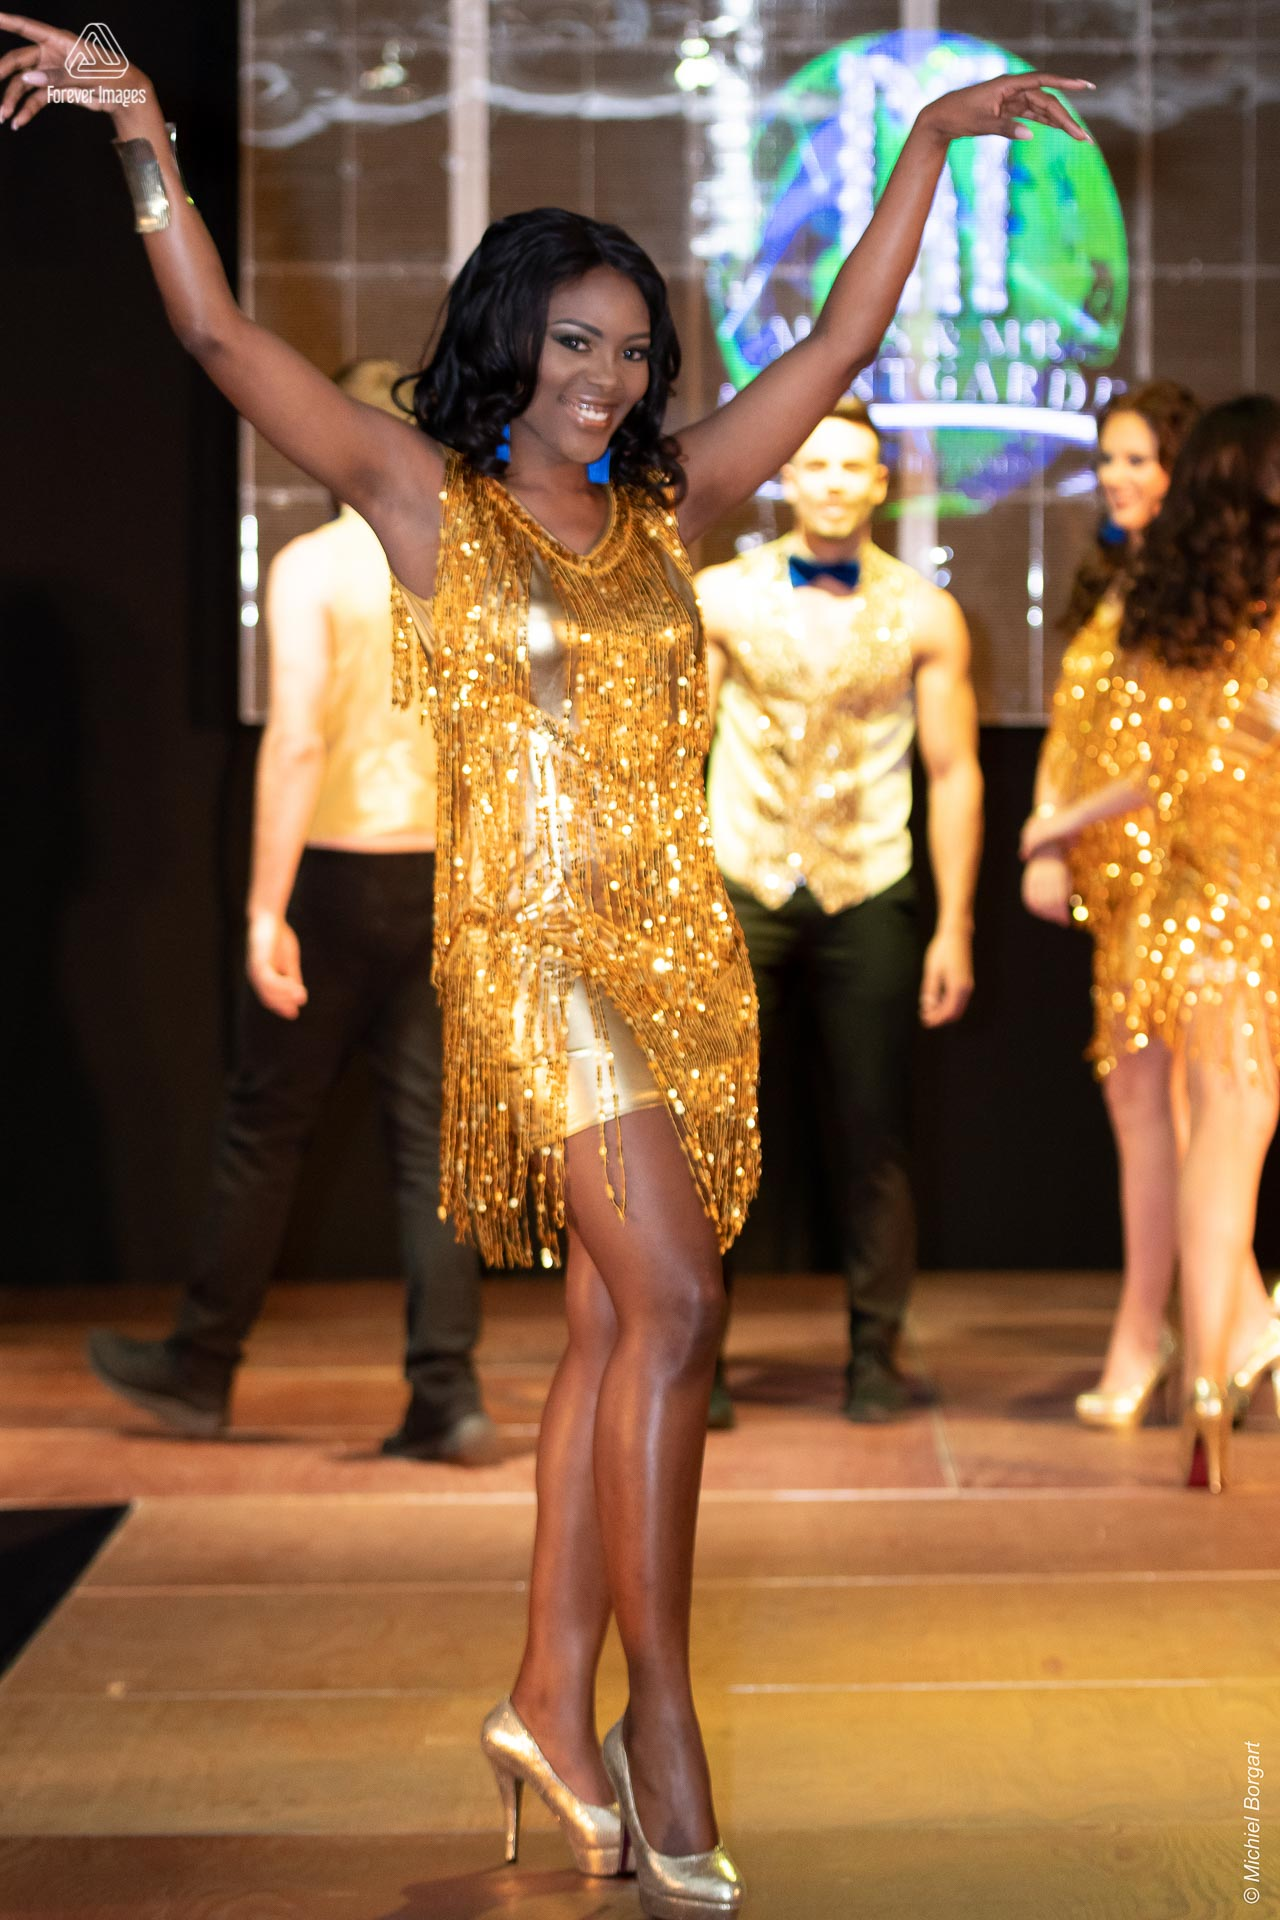 Grand Finale Miss Mr Avantgarde 2018 Vicky Foundation World Fashion Centre Amsterdam 1 | Mariana Pietersz David Cardenas | Michiel Borgart Forever Images.